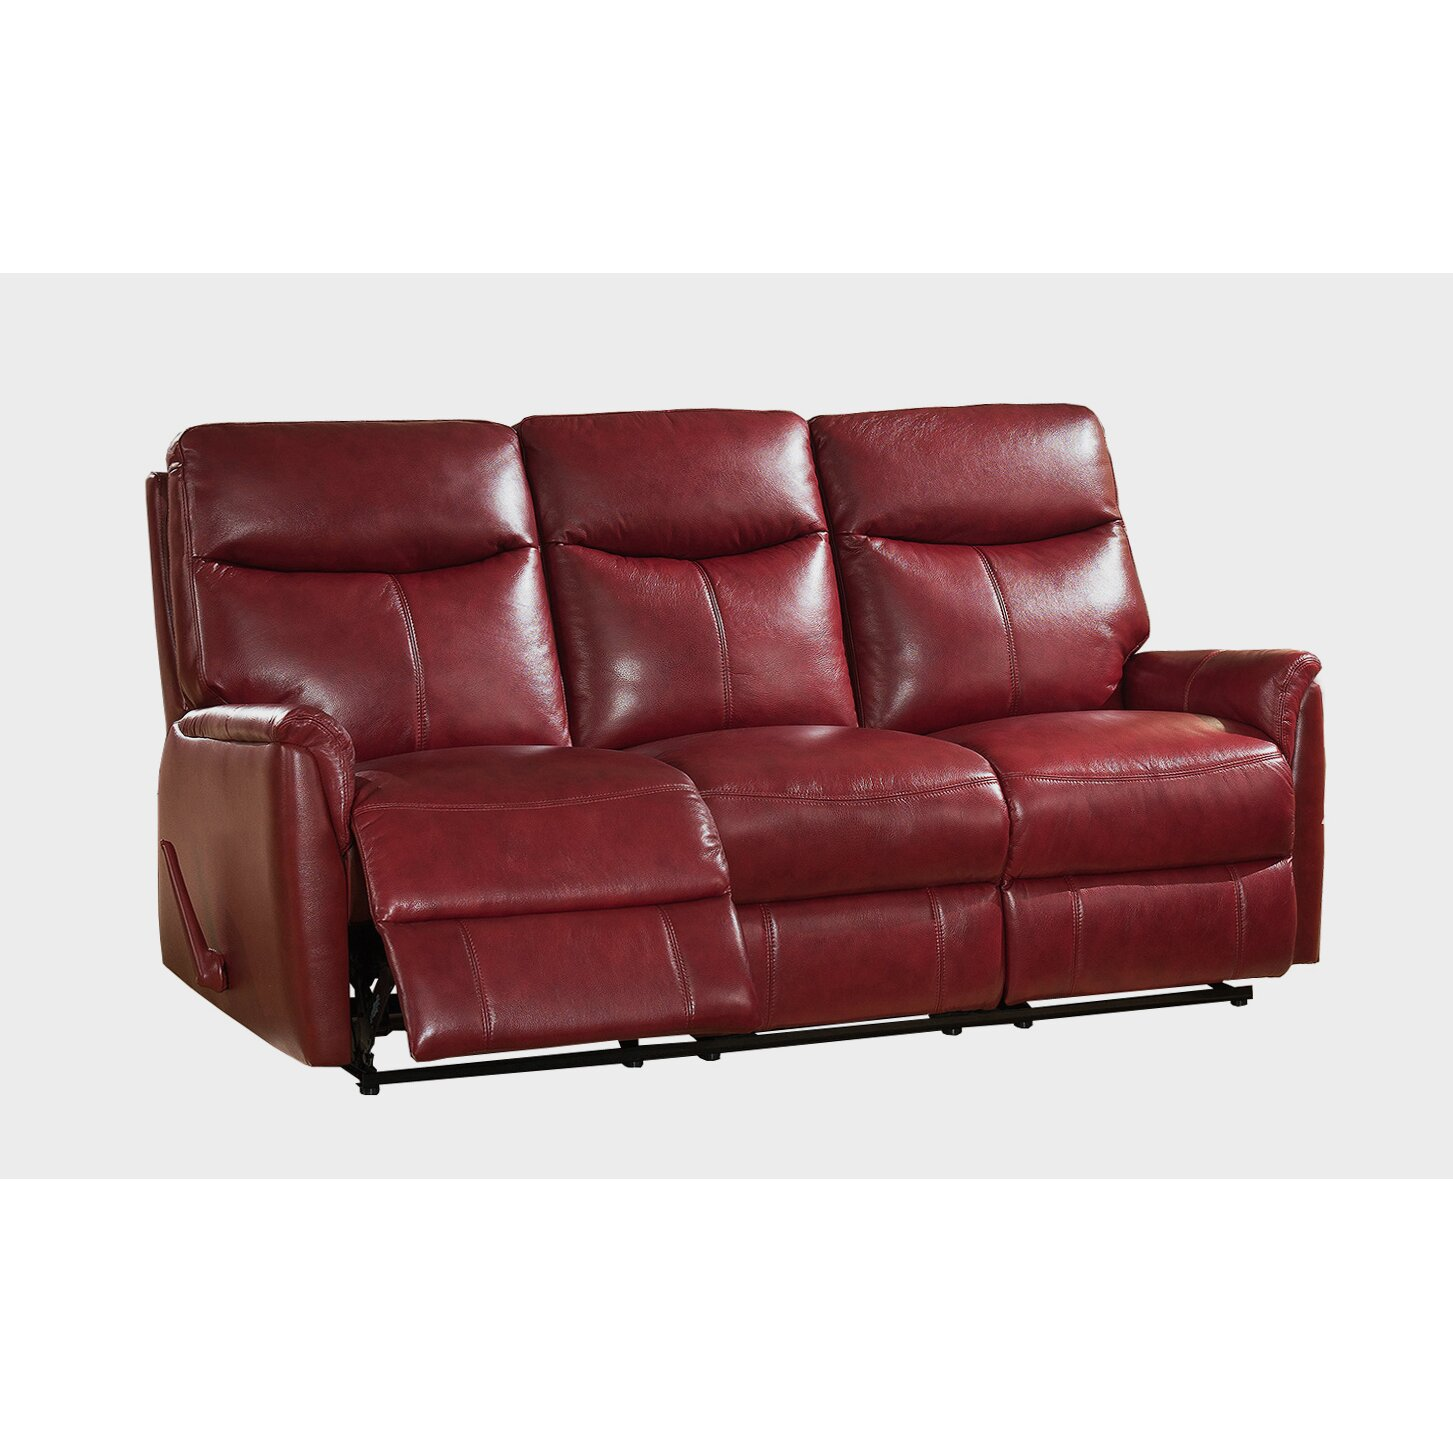 Amax napa top grain leather lay flat reclining sofa and loveseat set wayfair Leather sofa and loveseat recliner